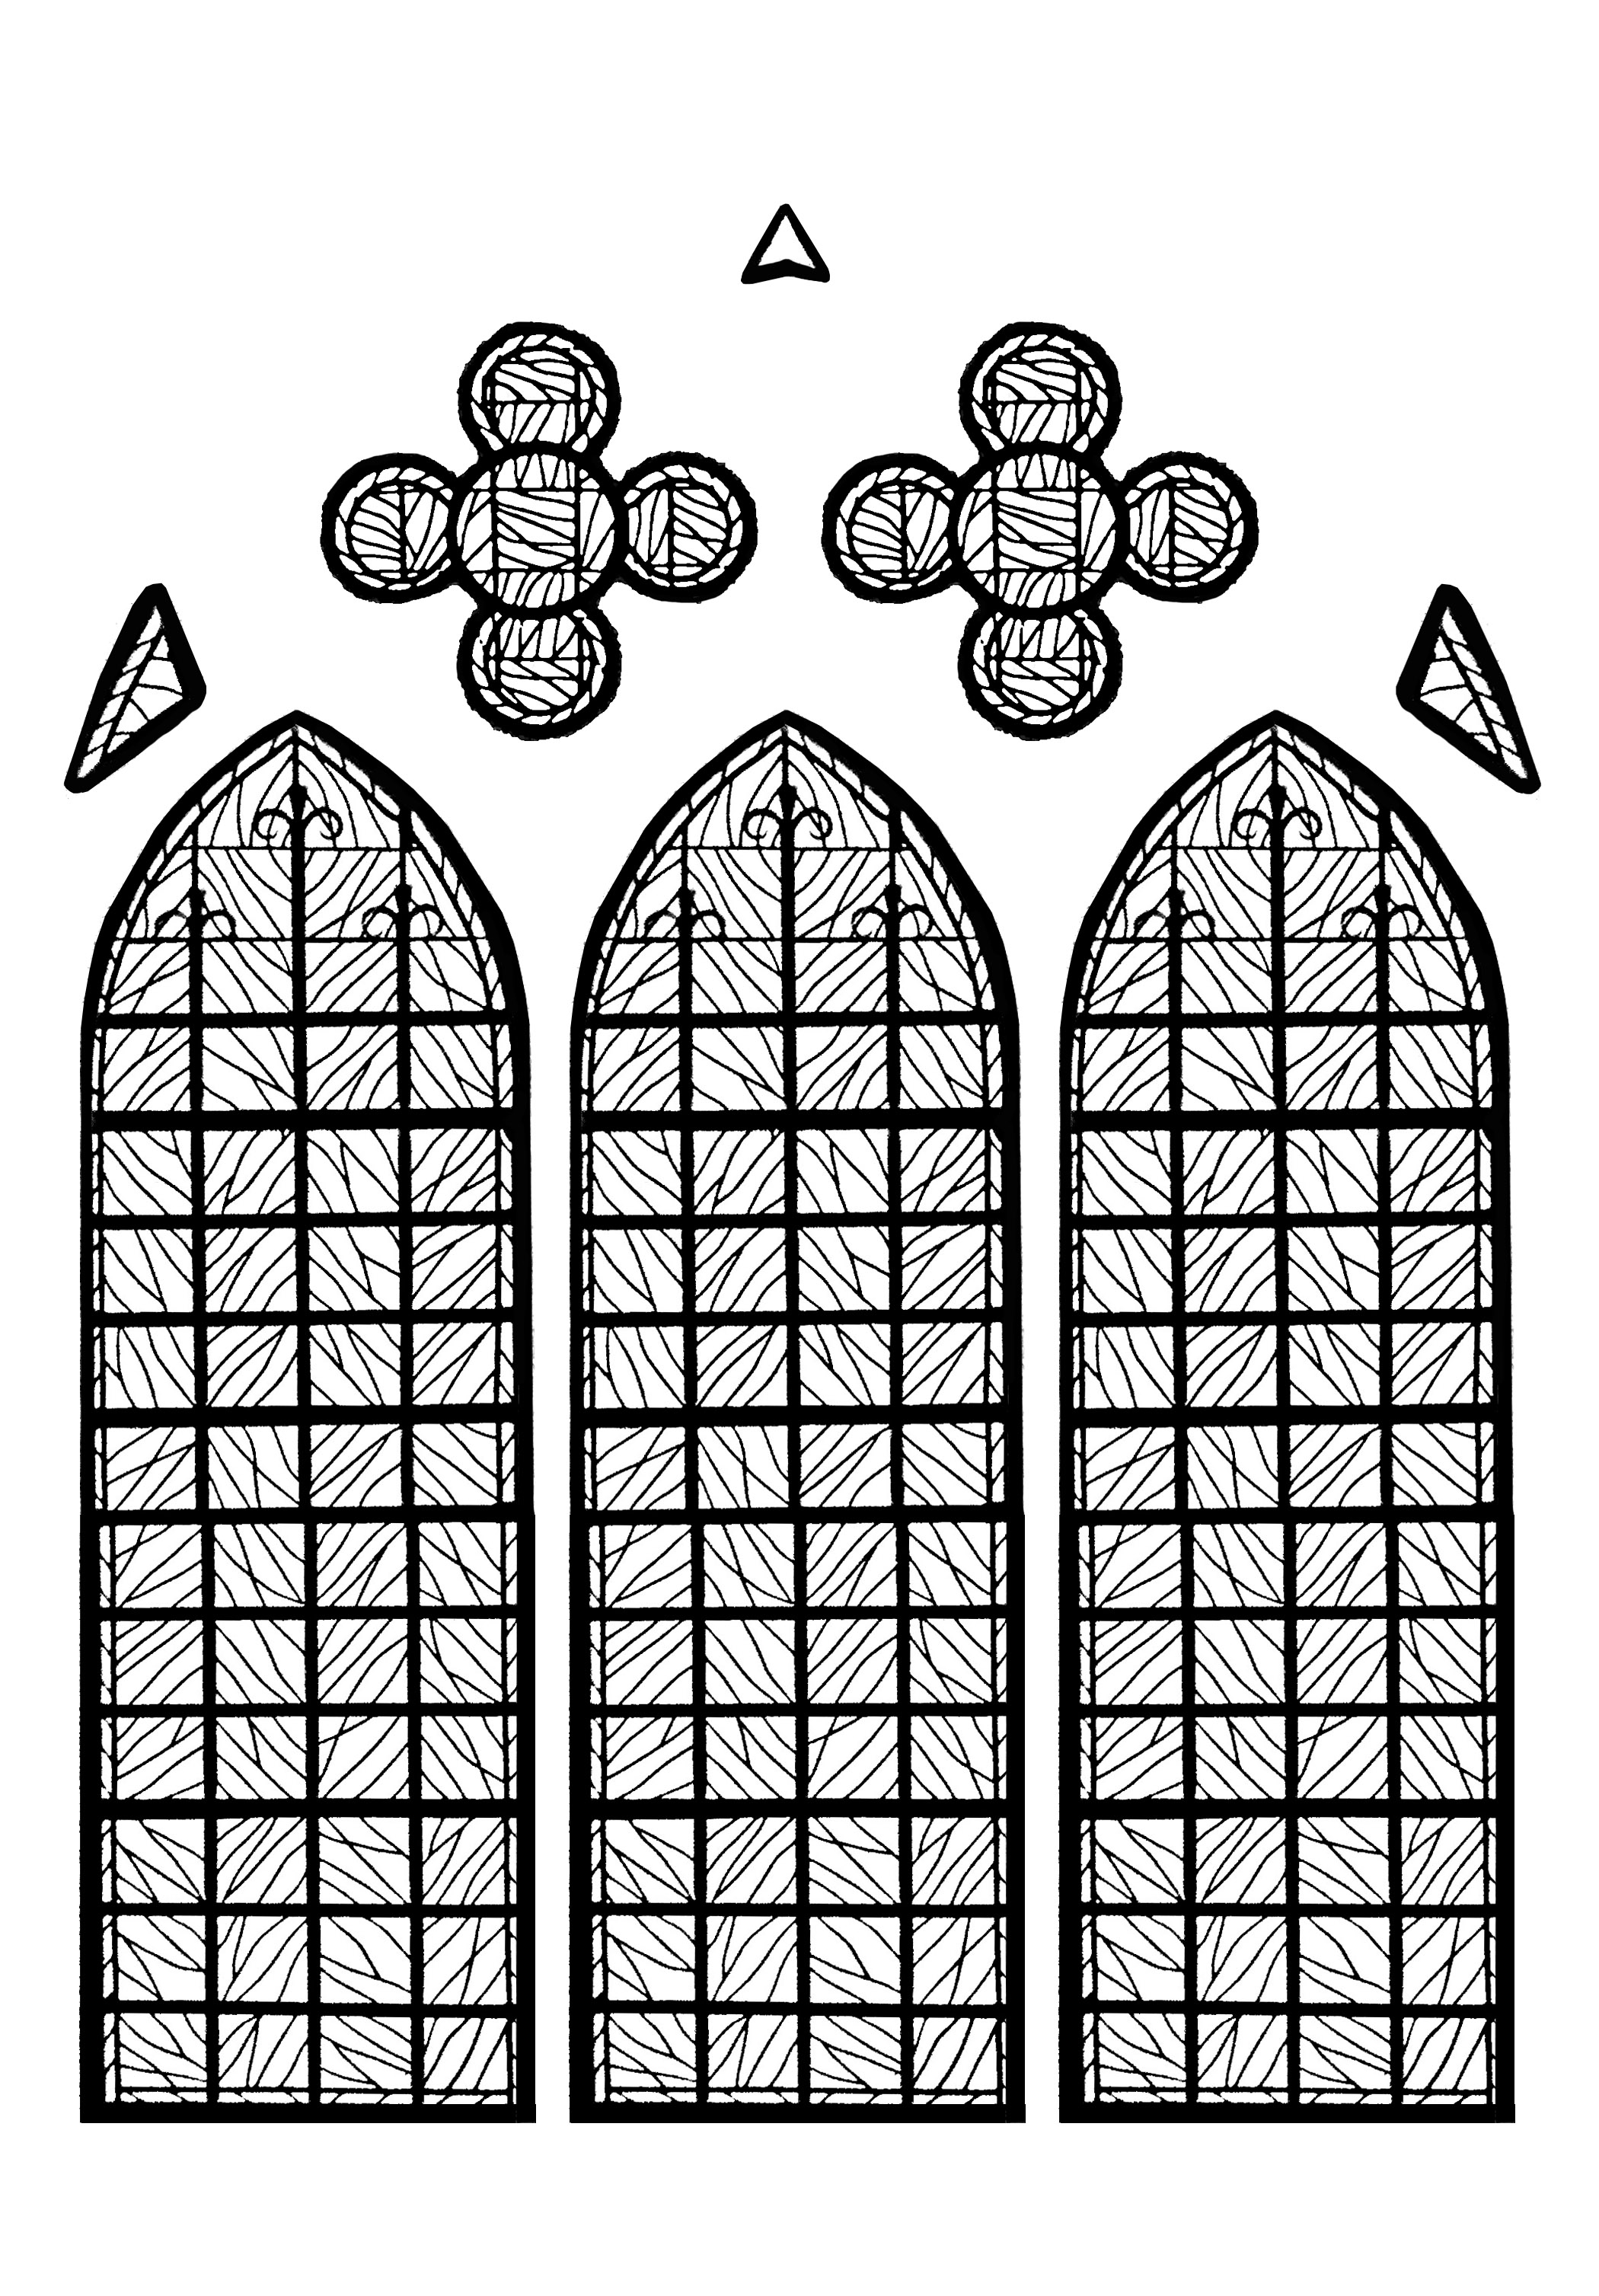 Stained glass chapelle chateau yverdon les bains france Coloring book for adults stress relieving stained glass